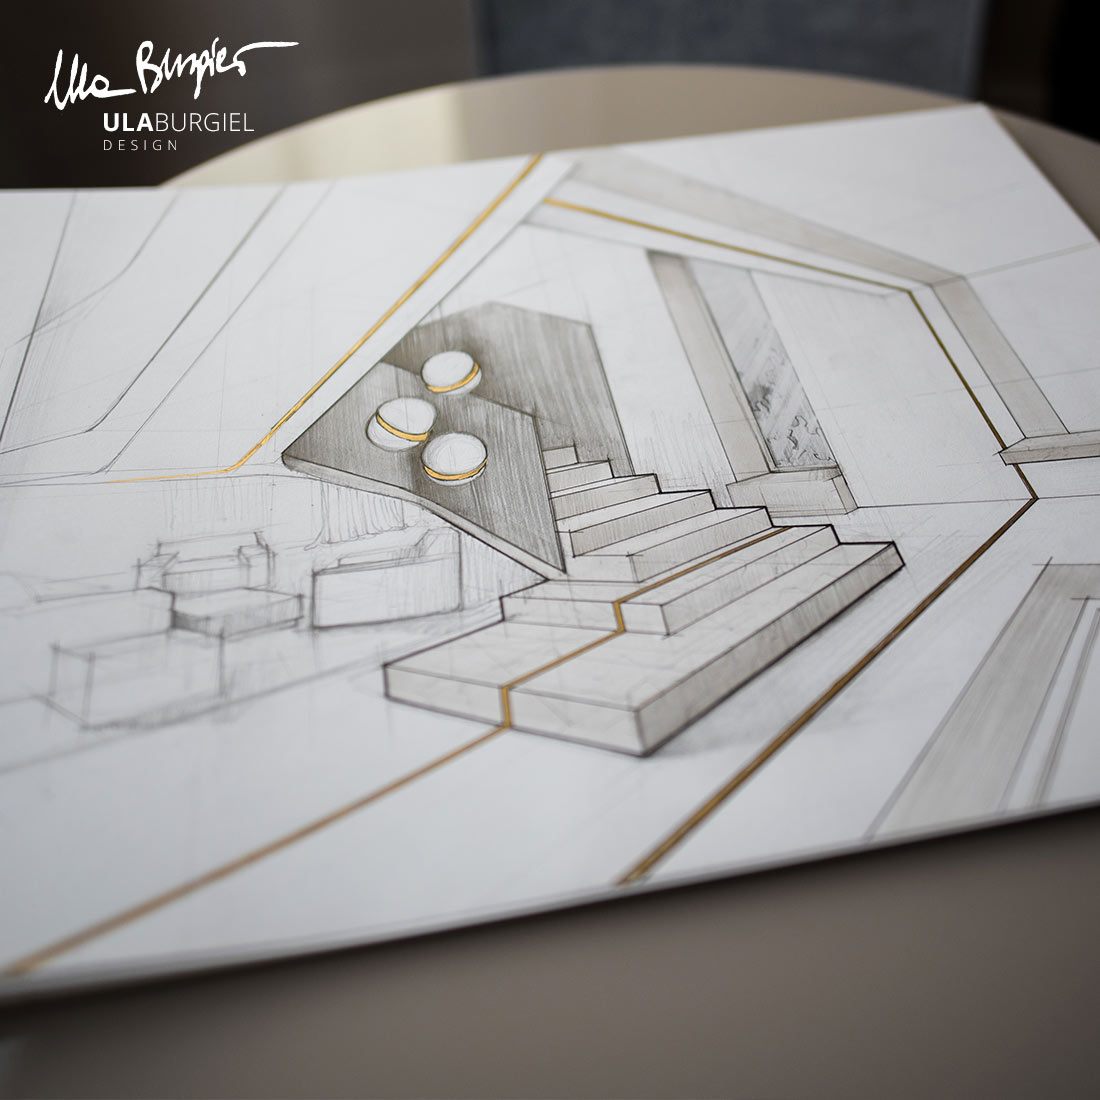 Interior design detail - sketch & design by Ula Burgiel